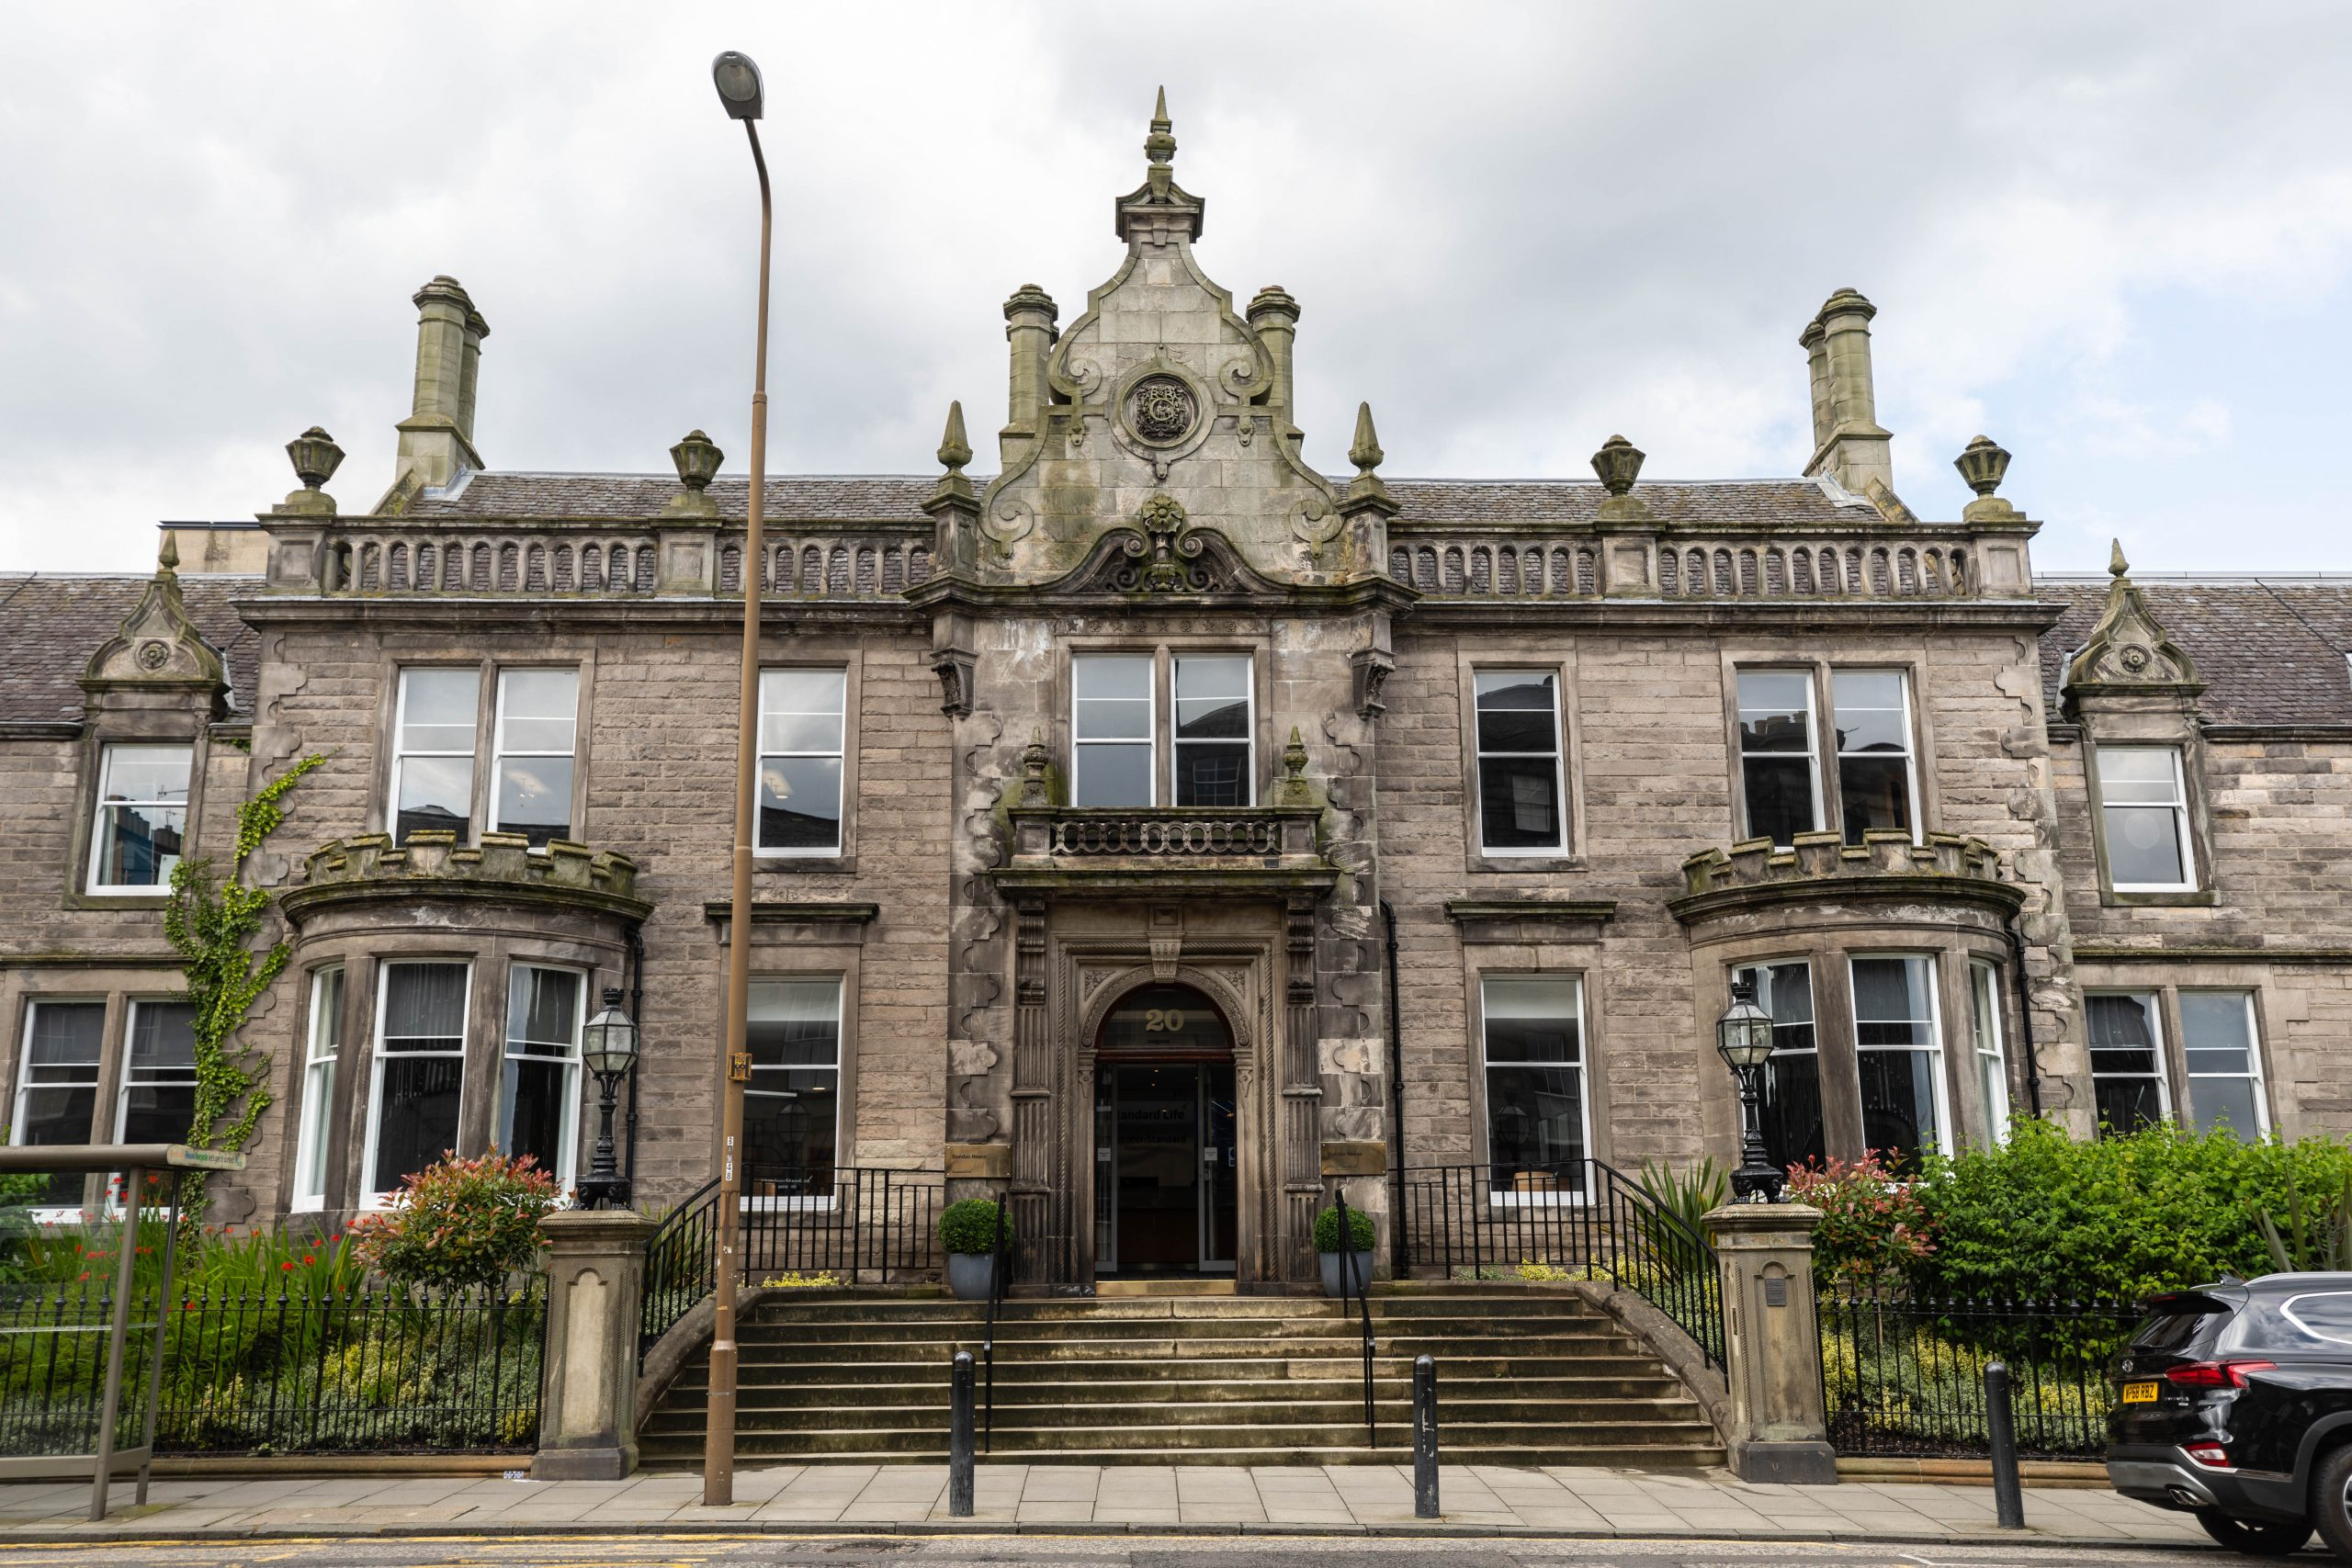 Edinburgh the Luxury Travel Guide by Annie Fairfax Where to Eat What to Do Where to Stay Site Seeing in Edinburgh Honeymoon Vacation Ideas